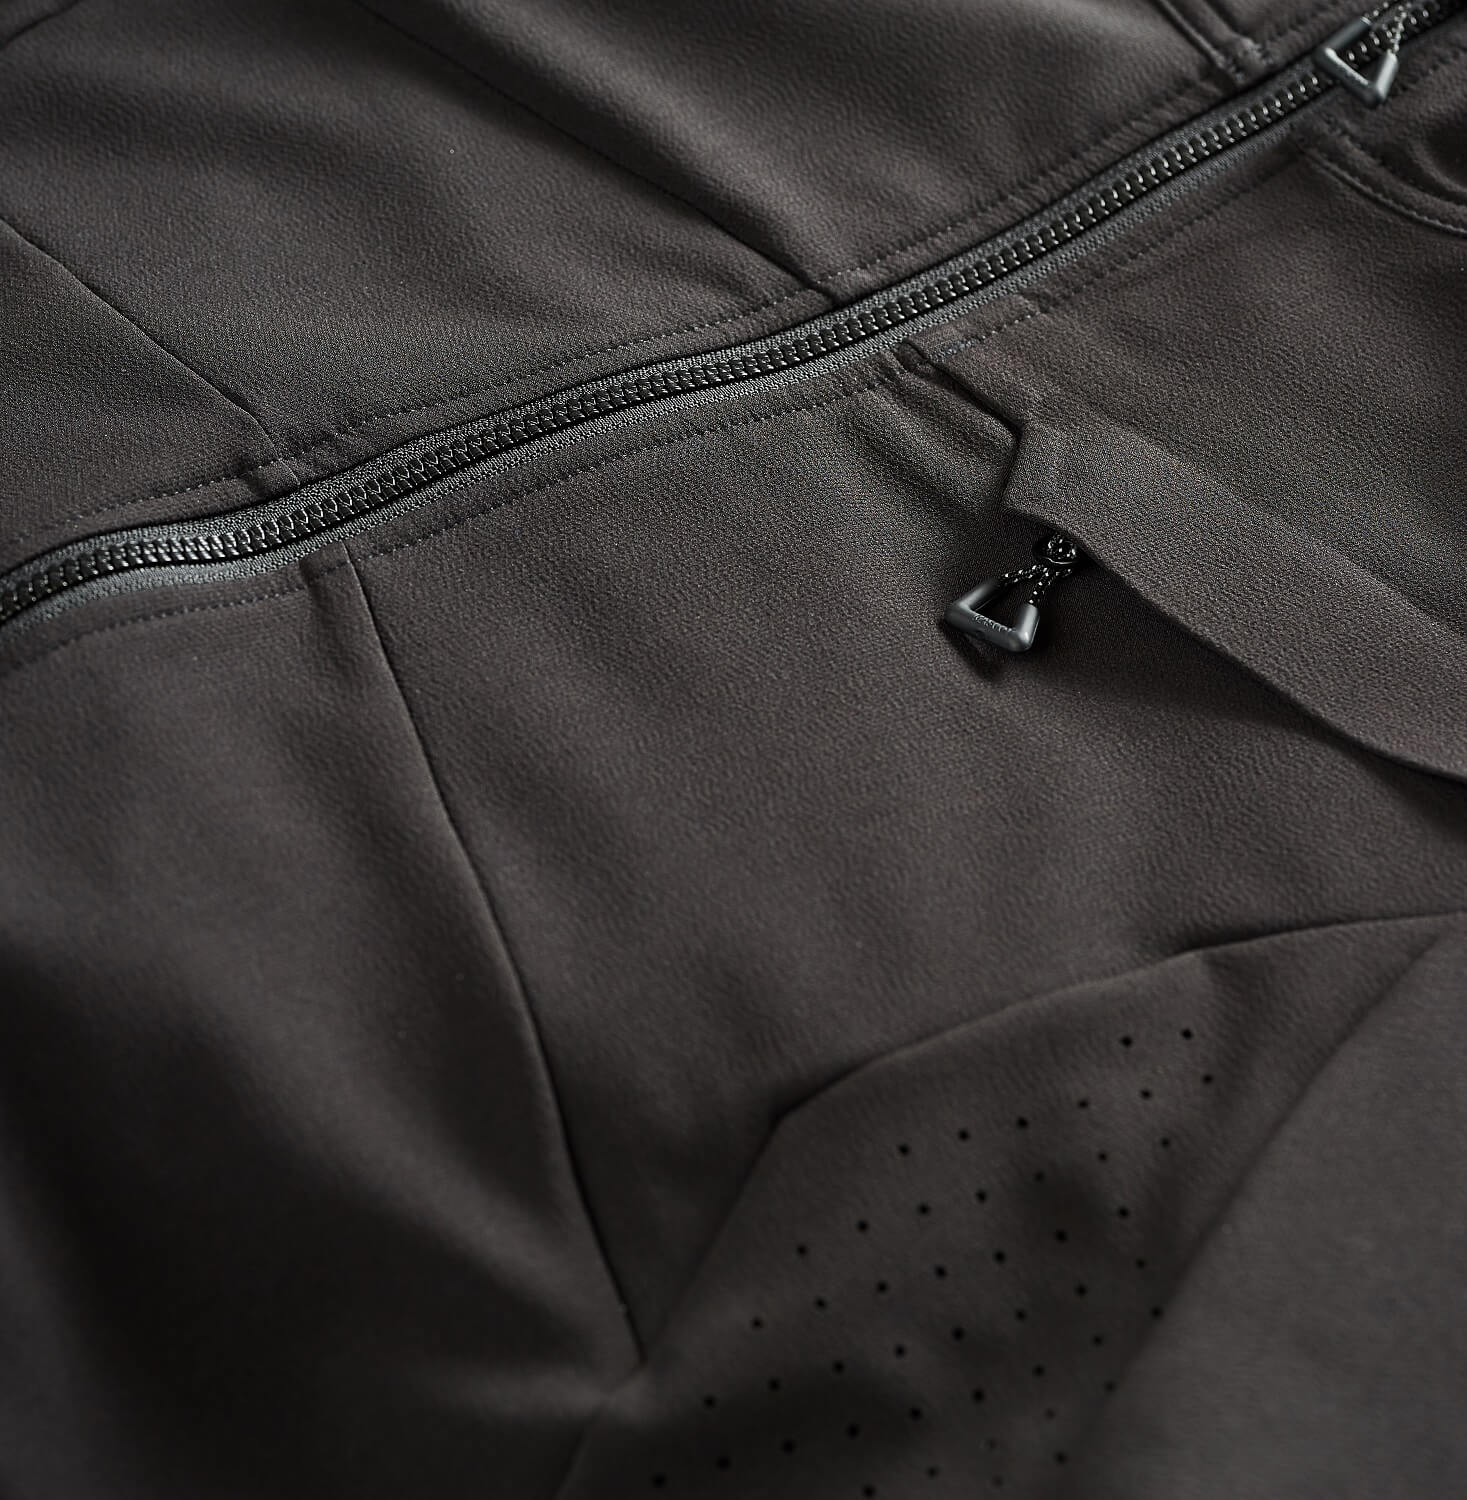 Jacket - MASCOT® ACCELERATE - Black - Detail